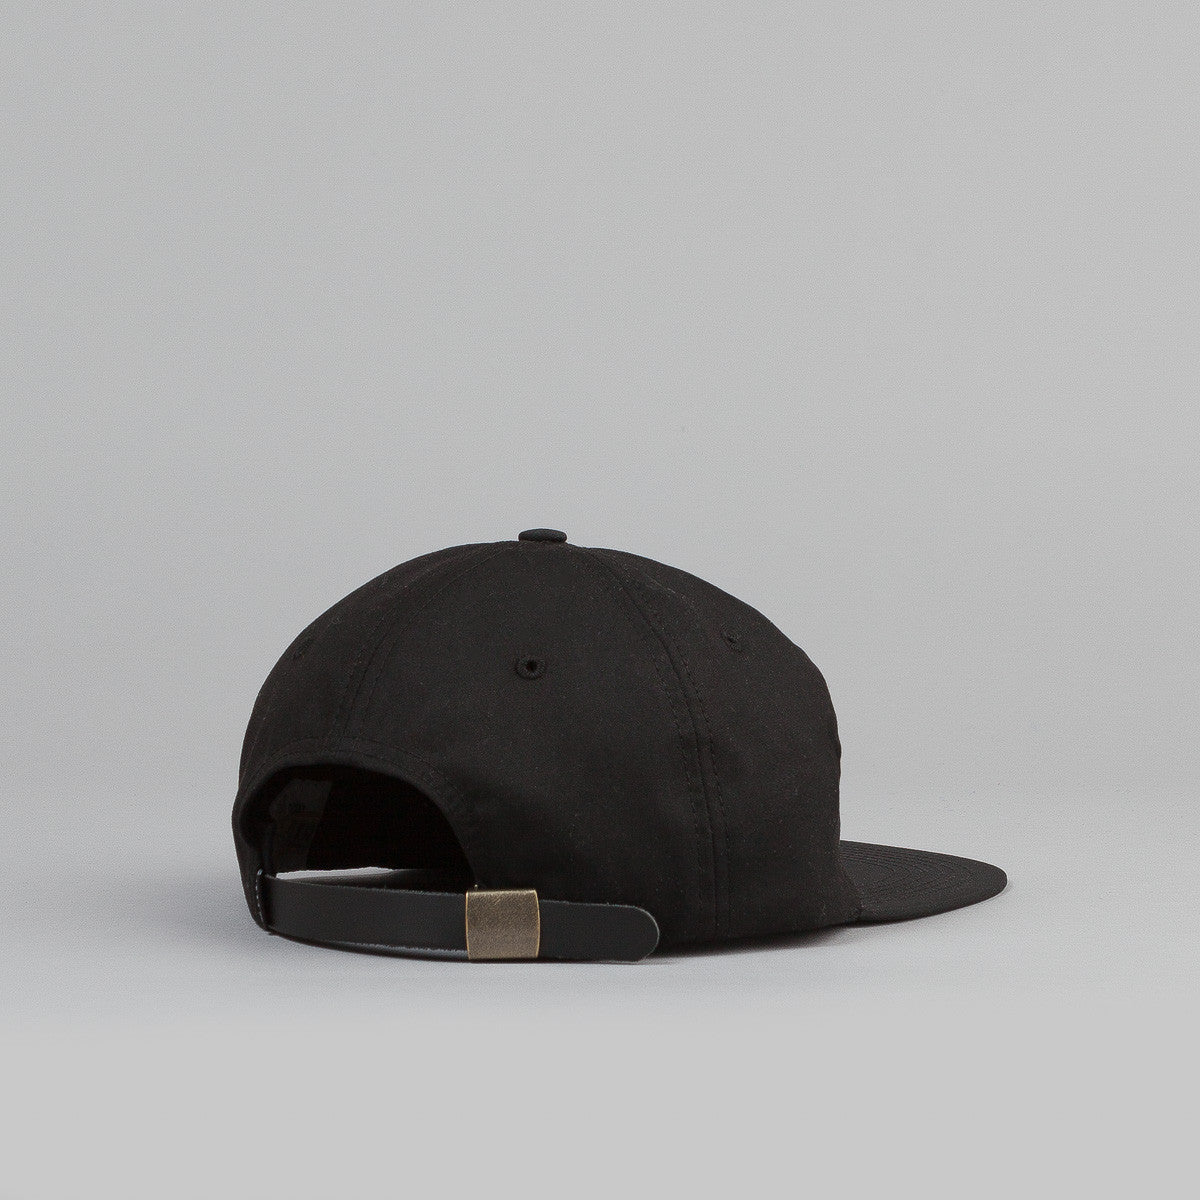 HUF X British Millerain Waxed 6 Panel Cap - Black